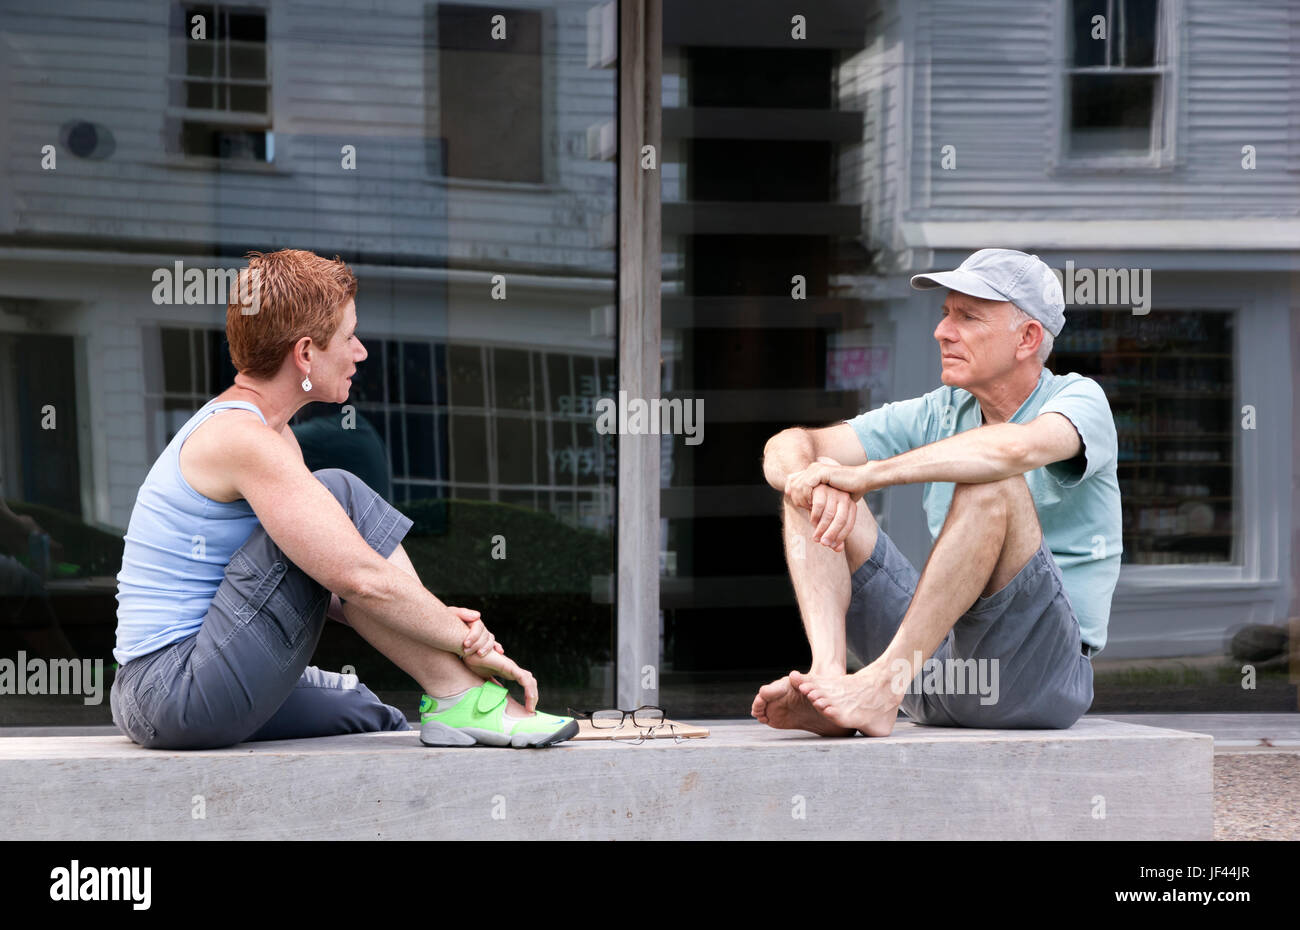 Two adults sitting and having a conversation while sitting on a ledge outdoors. - Stock Image